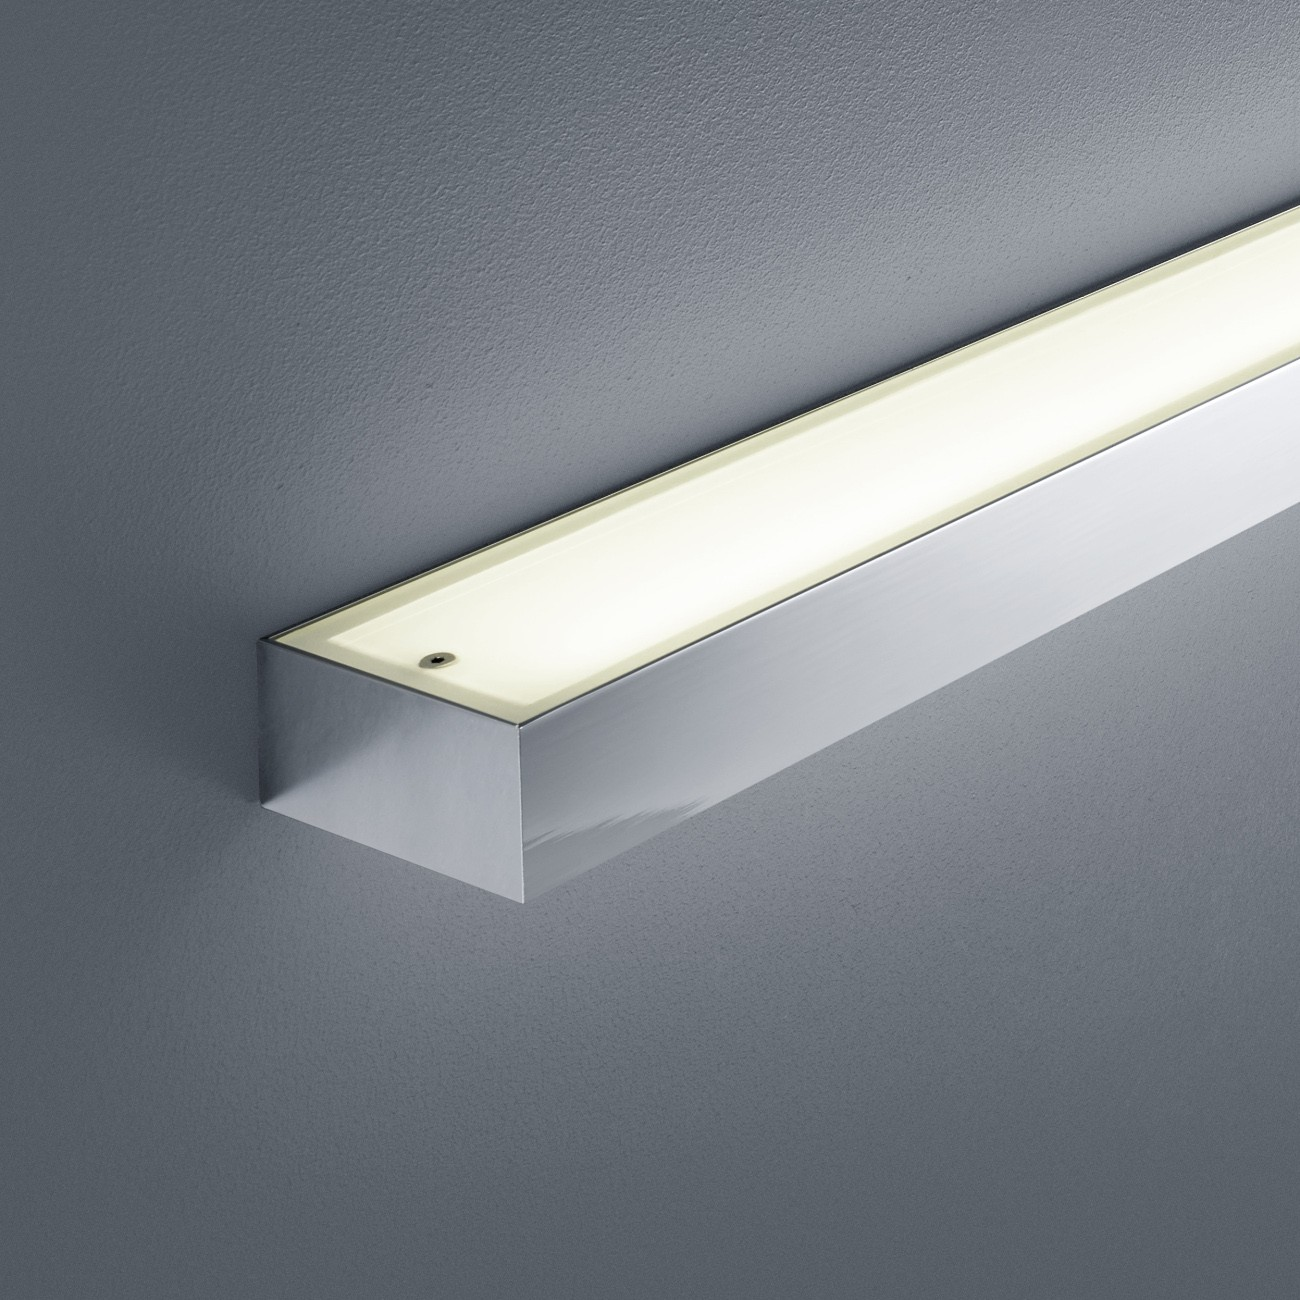 LED-Spiegelleuchte IP44, THEIA 900 Chrom